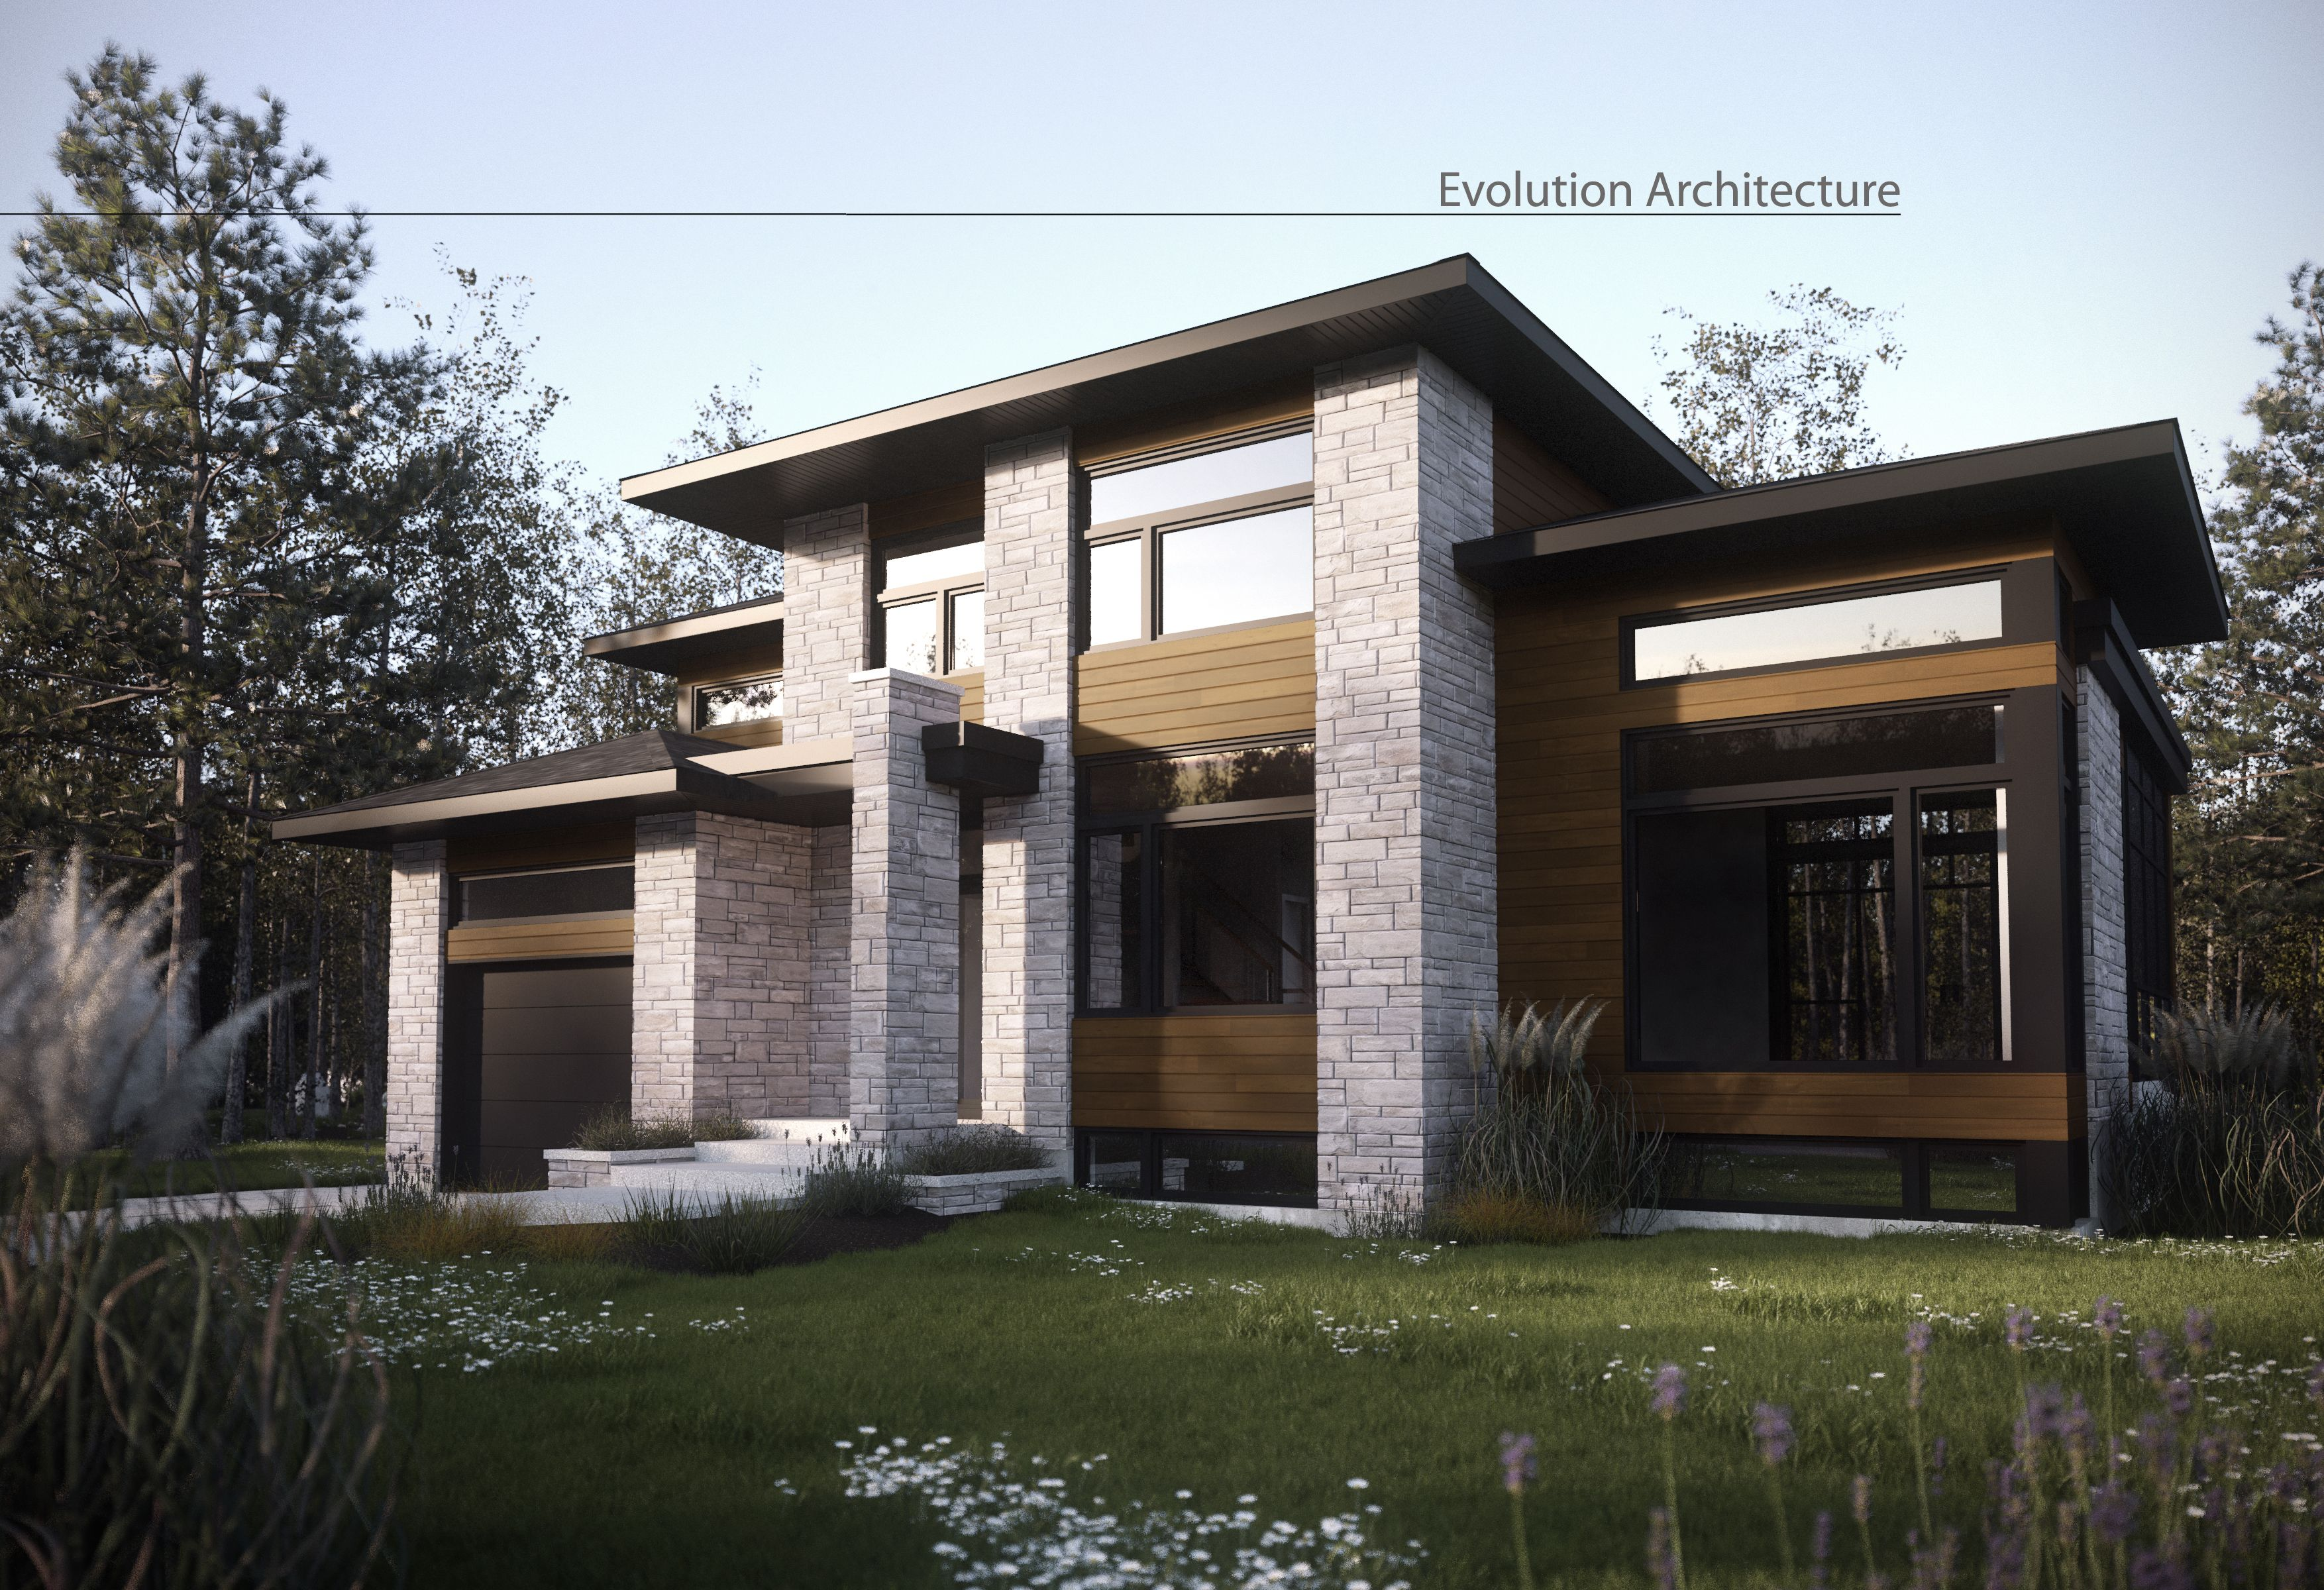 Evolution architecture maison contemporaine cr ation for Modele interieur maison moderne